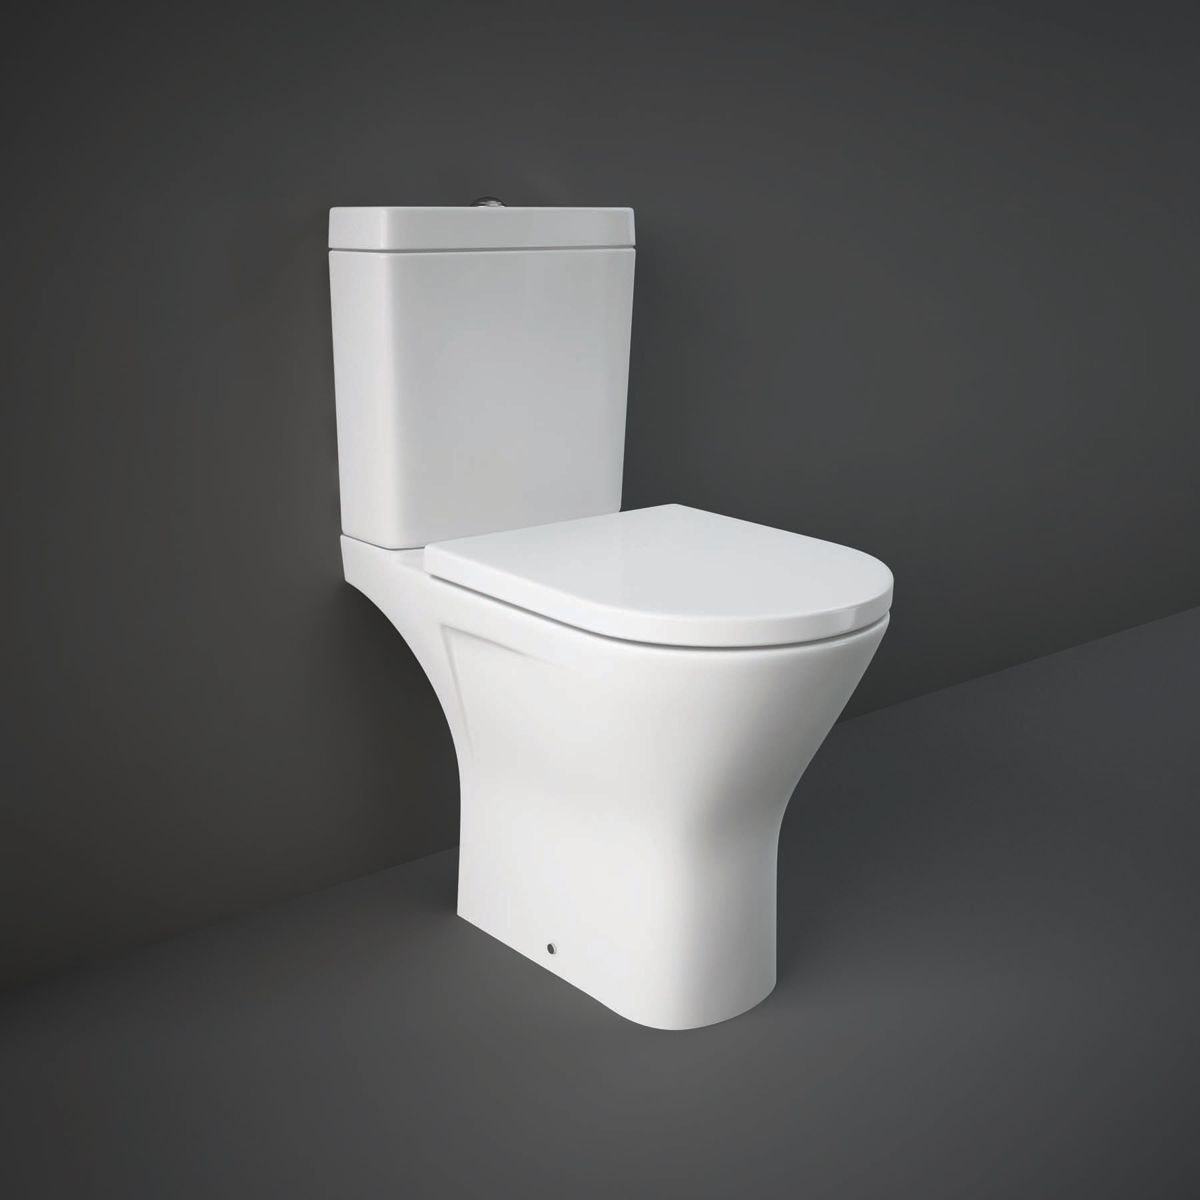 RAK Resort Maxi Open Back Close Coupled Toilet with Soft Close Seat